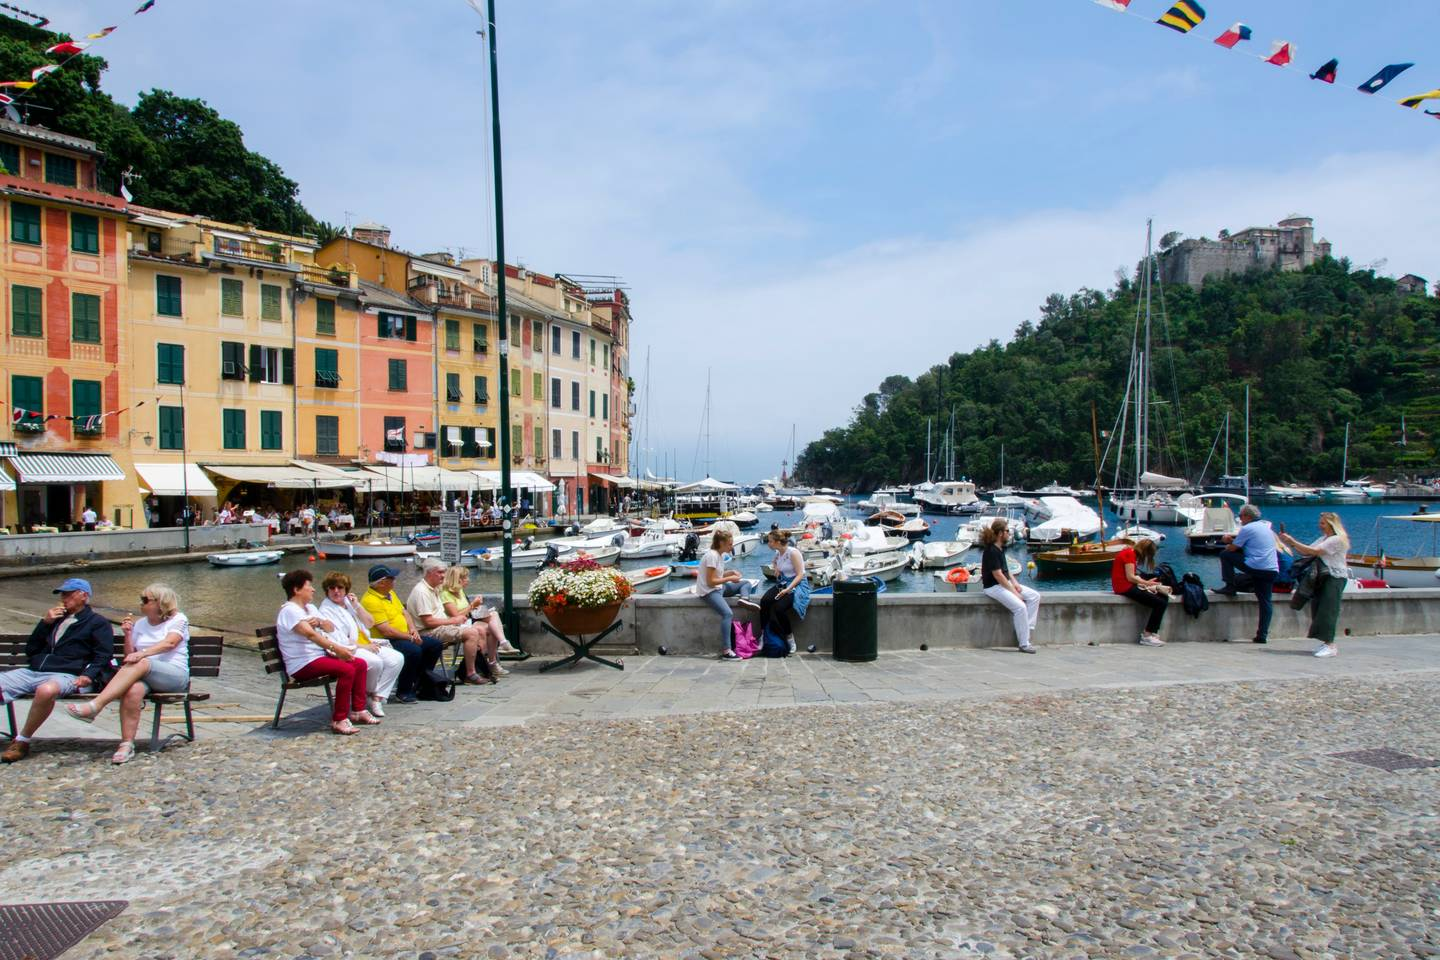 Apartment Hintown  La Finestra sulla Piazzetta a Portofino photo 18309762